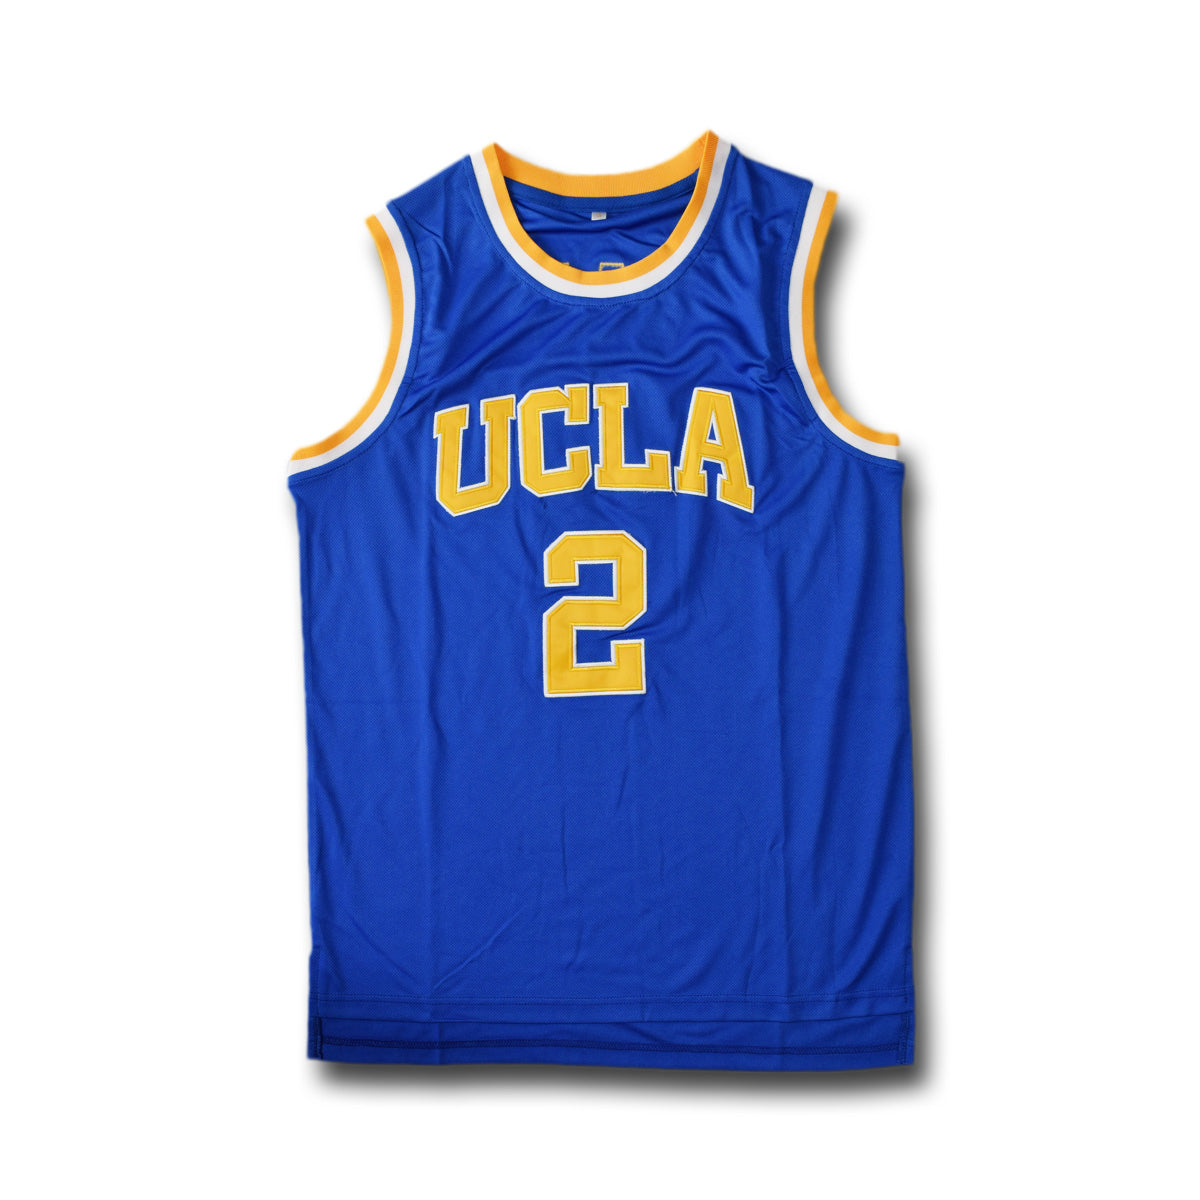 new arrival dd6a9 6d26d Ball #2 Ucla Blue Basketball Jersey